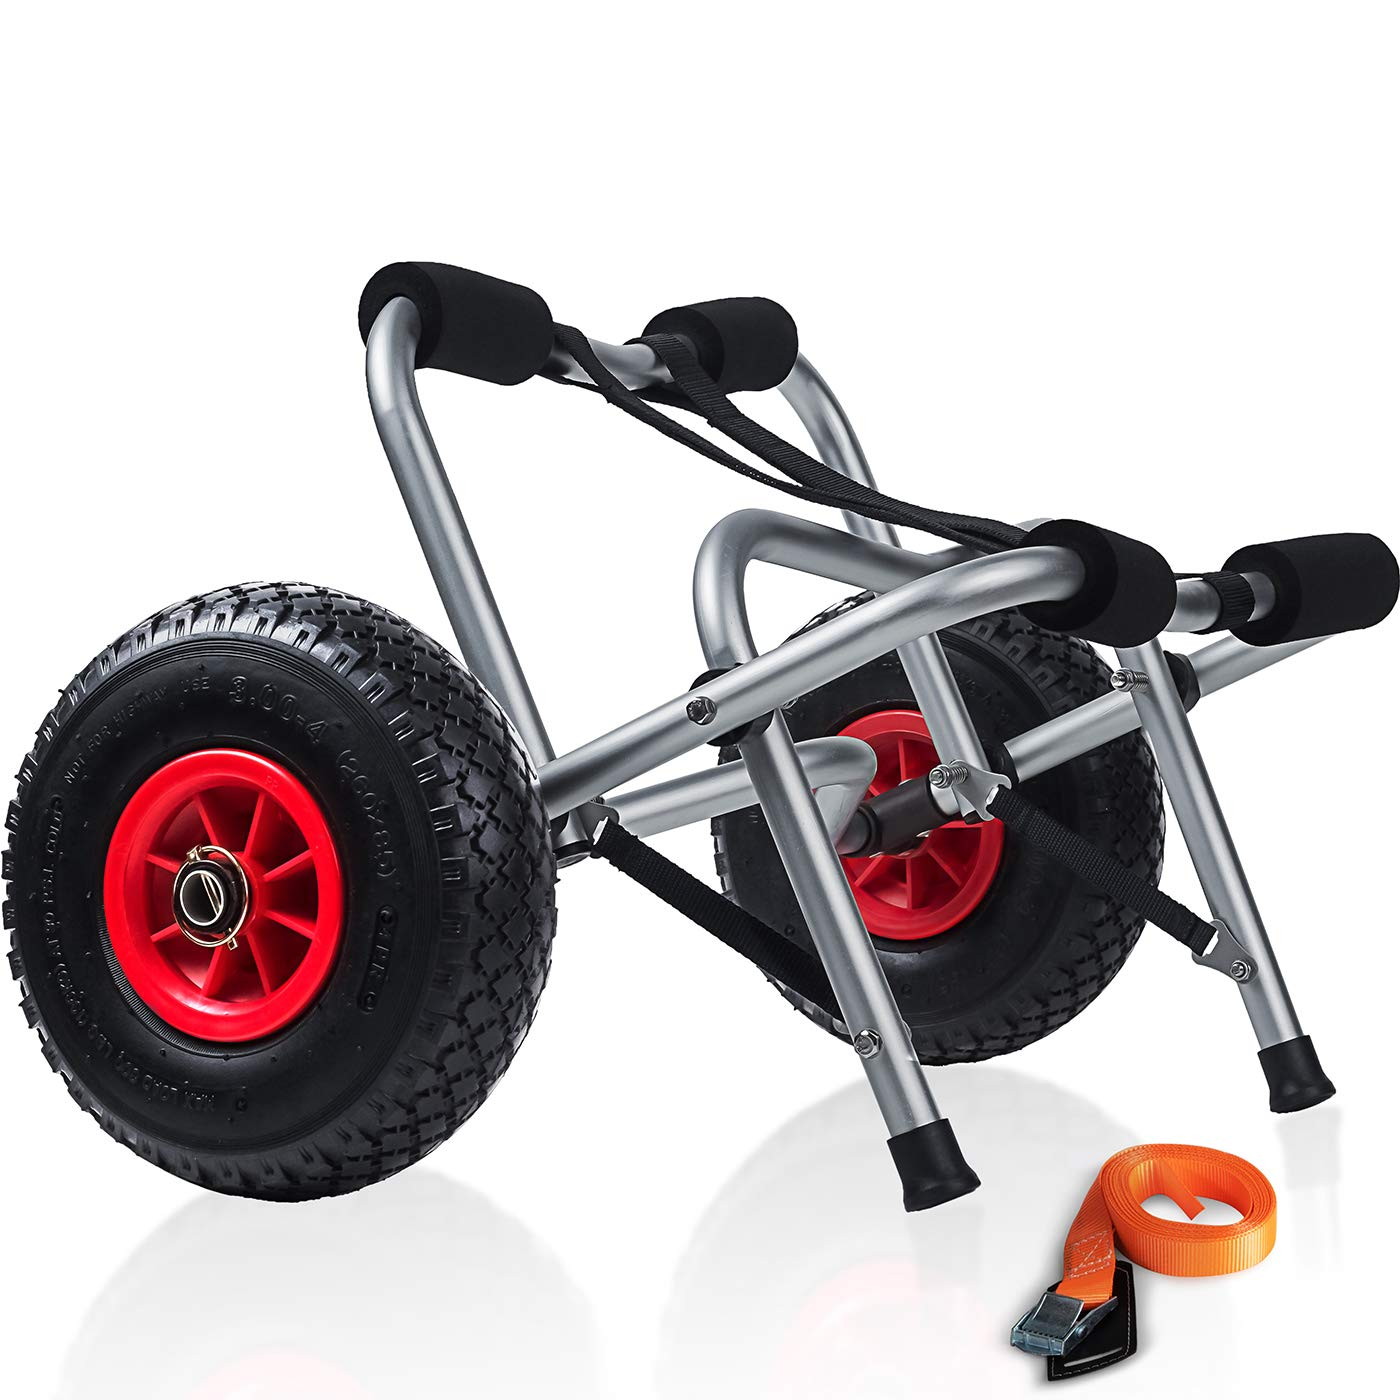 Kayak Cart Dolly Wheels Trolley - Kayaking Accessories Best for Beach Tires Transport Canoe Fishing Jon Boat Carrier Caddy Scupper Carts Trolly Roller Sit on Top Kayaks Wagon Wheel Hauler Tote Rollers by OxGord